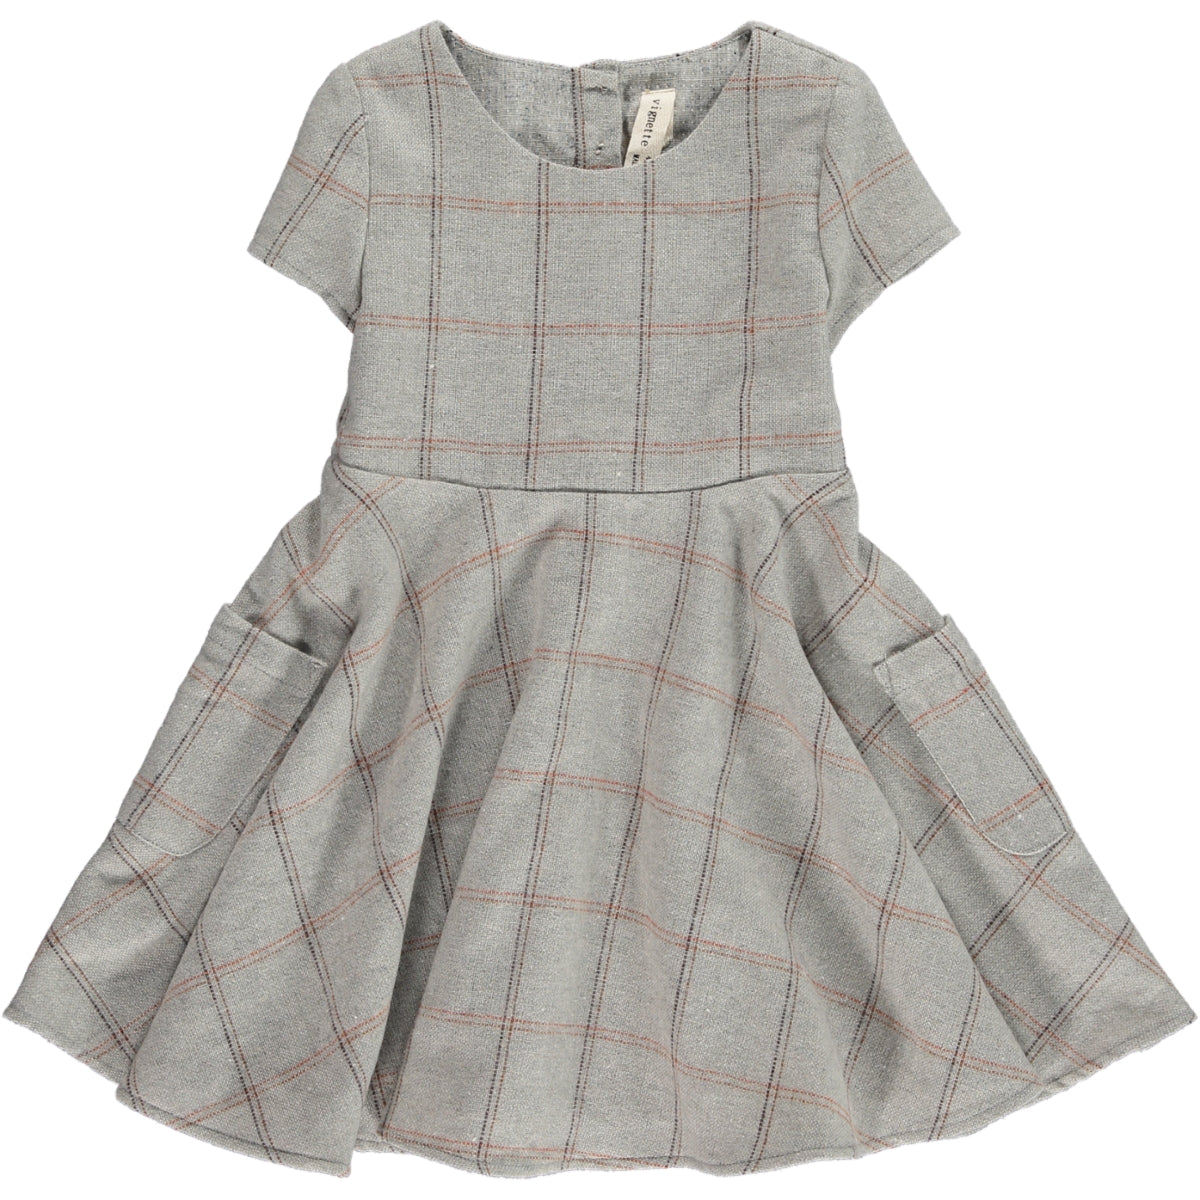 debbie dress in frost plaid